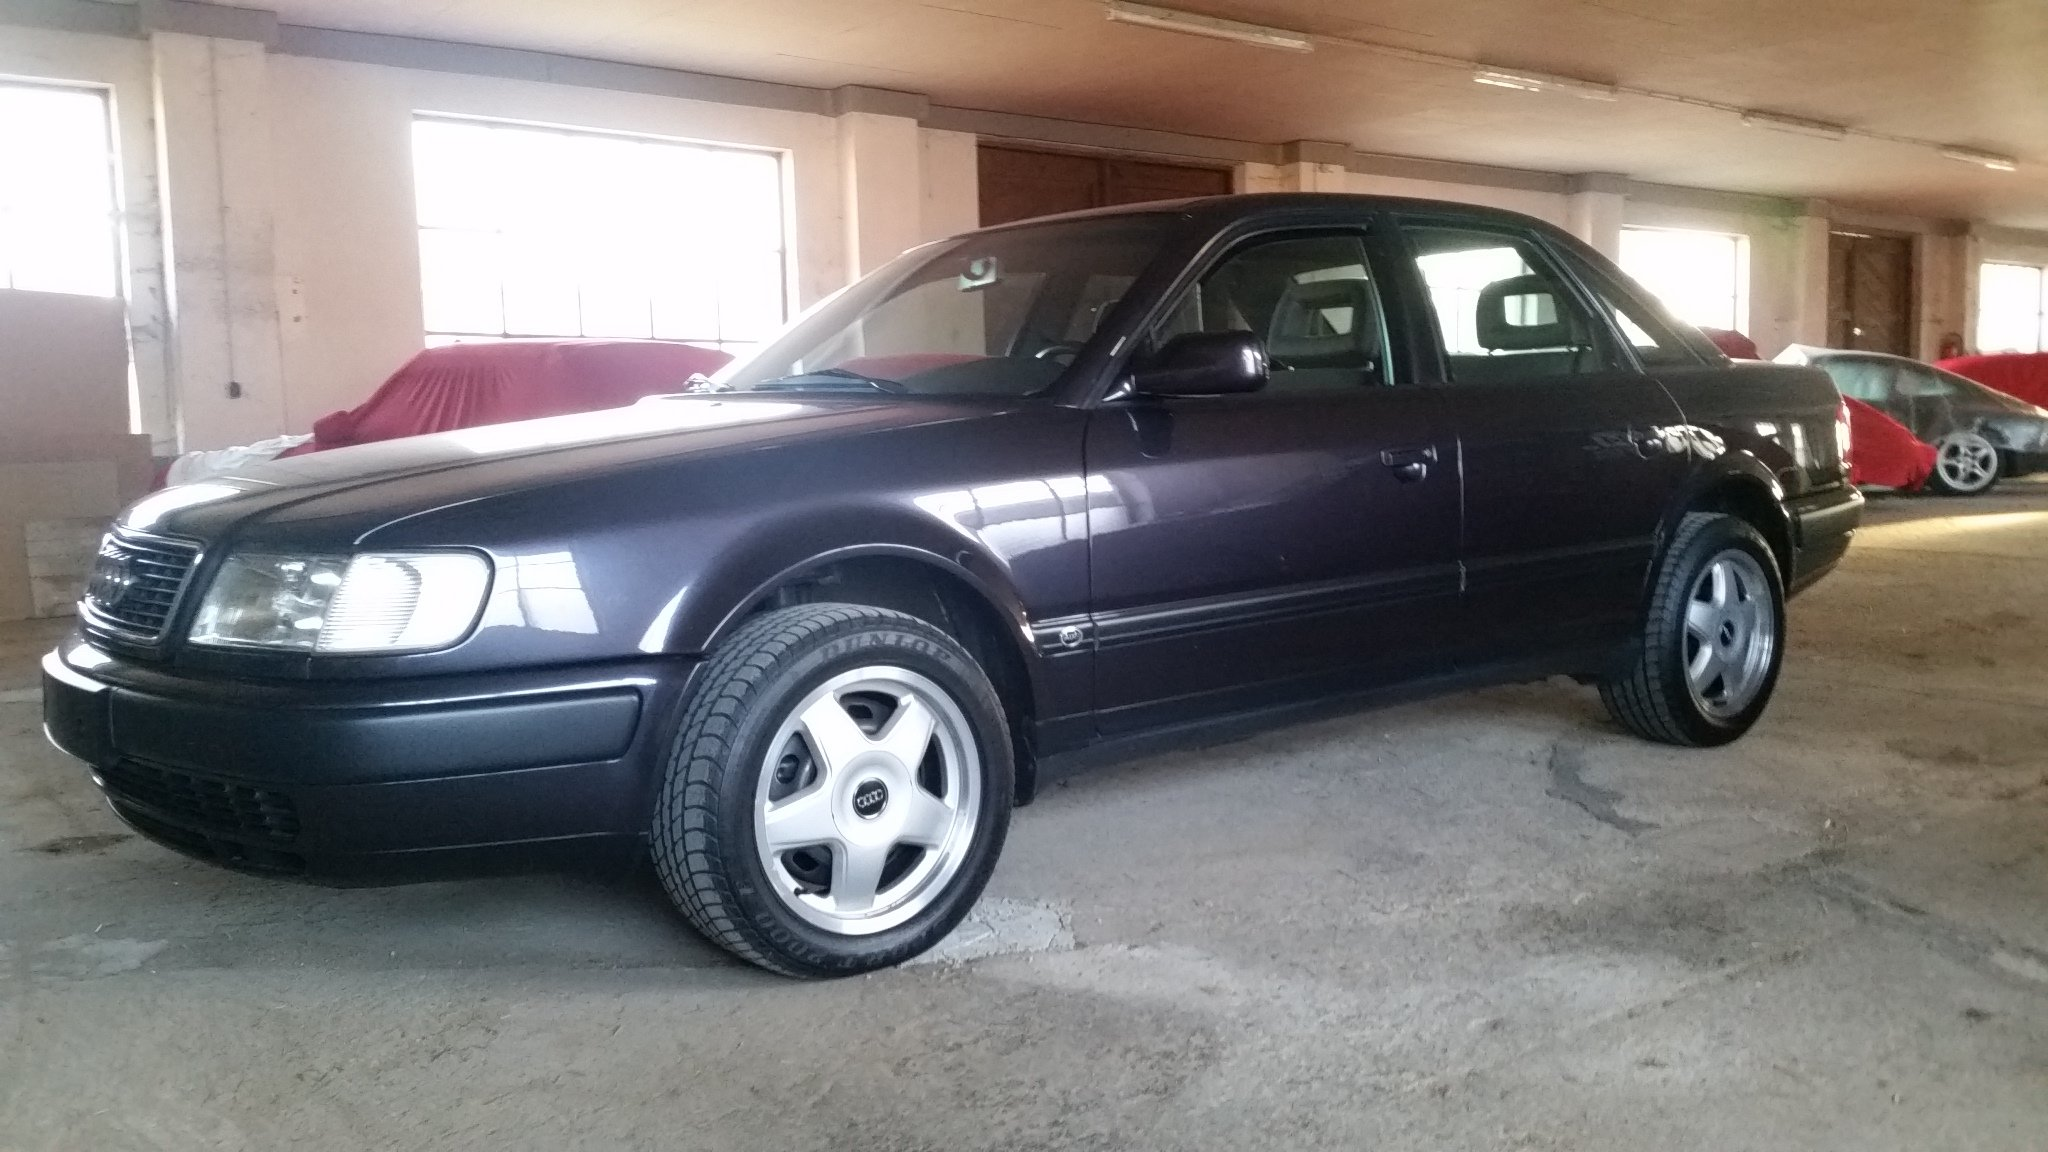 1992 Audi 100 C4 S4 1st owner, totally original, For Sale (picture 1 of 5)